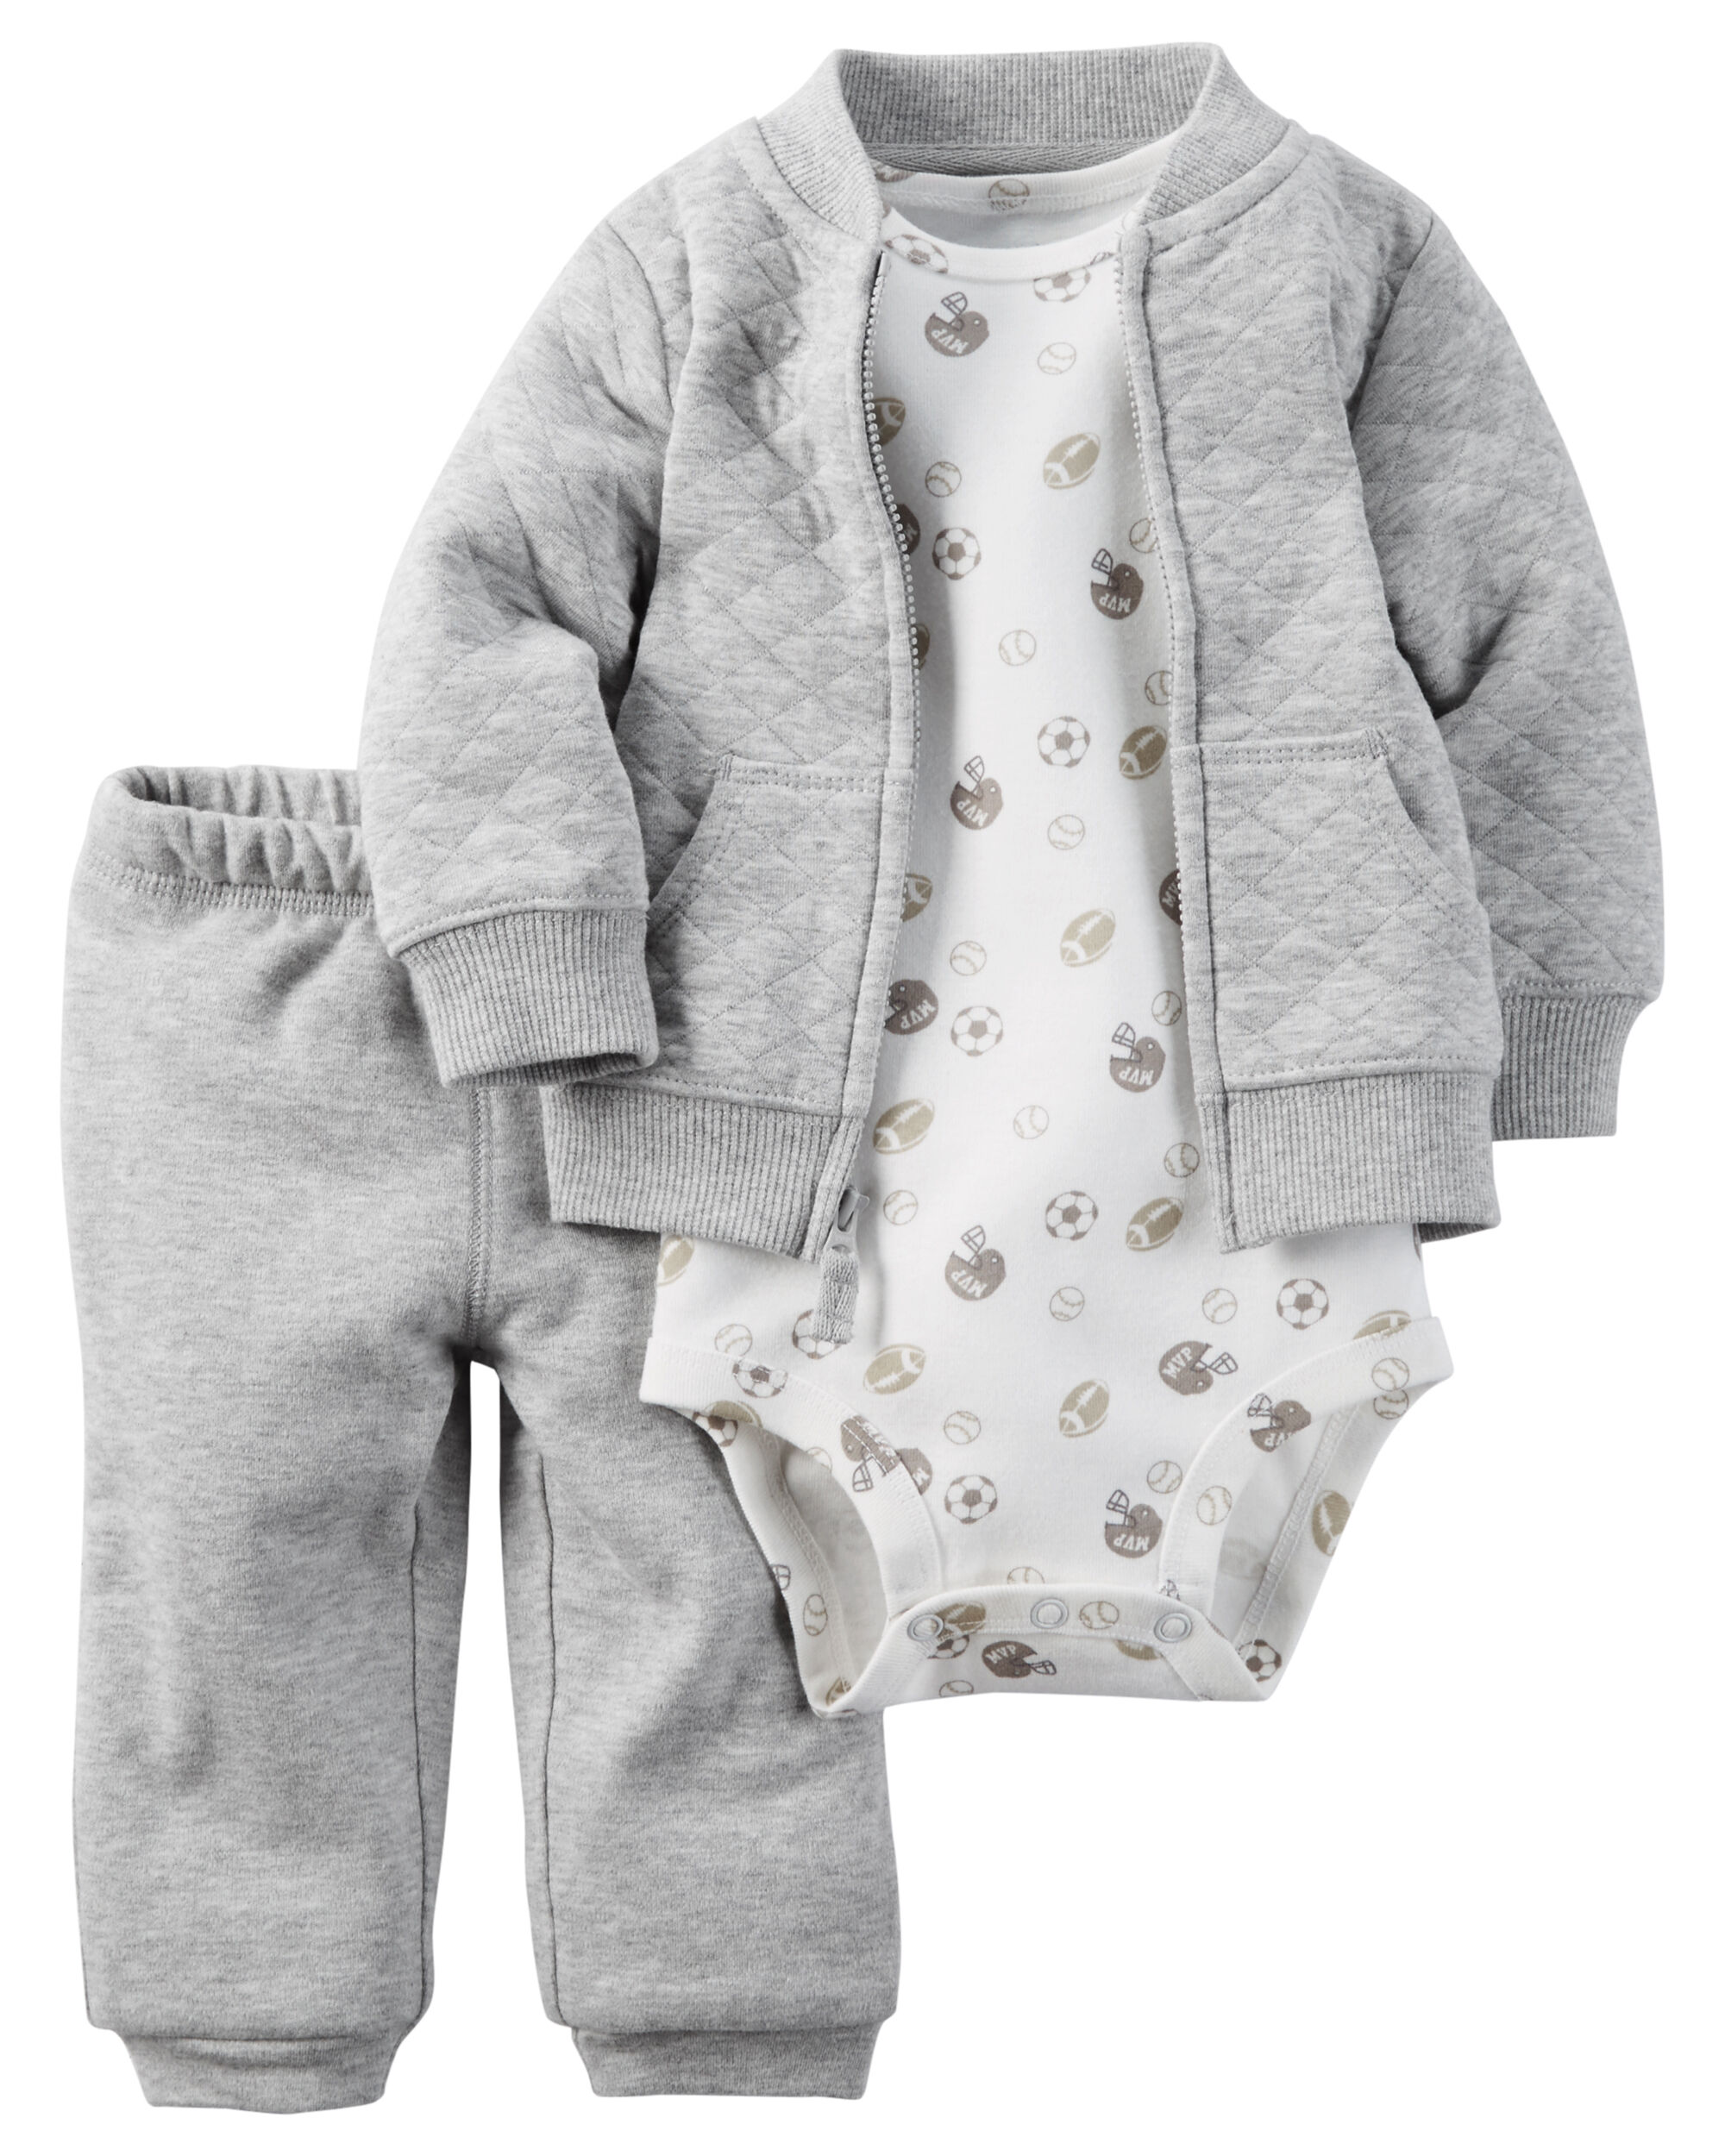 3 Piece Little Jacket Set